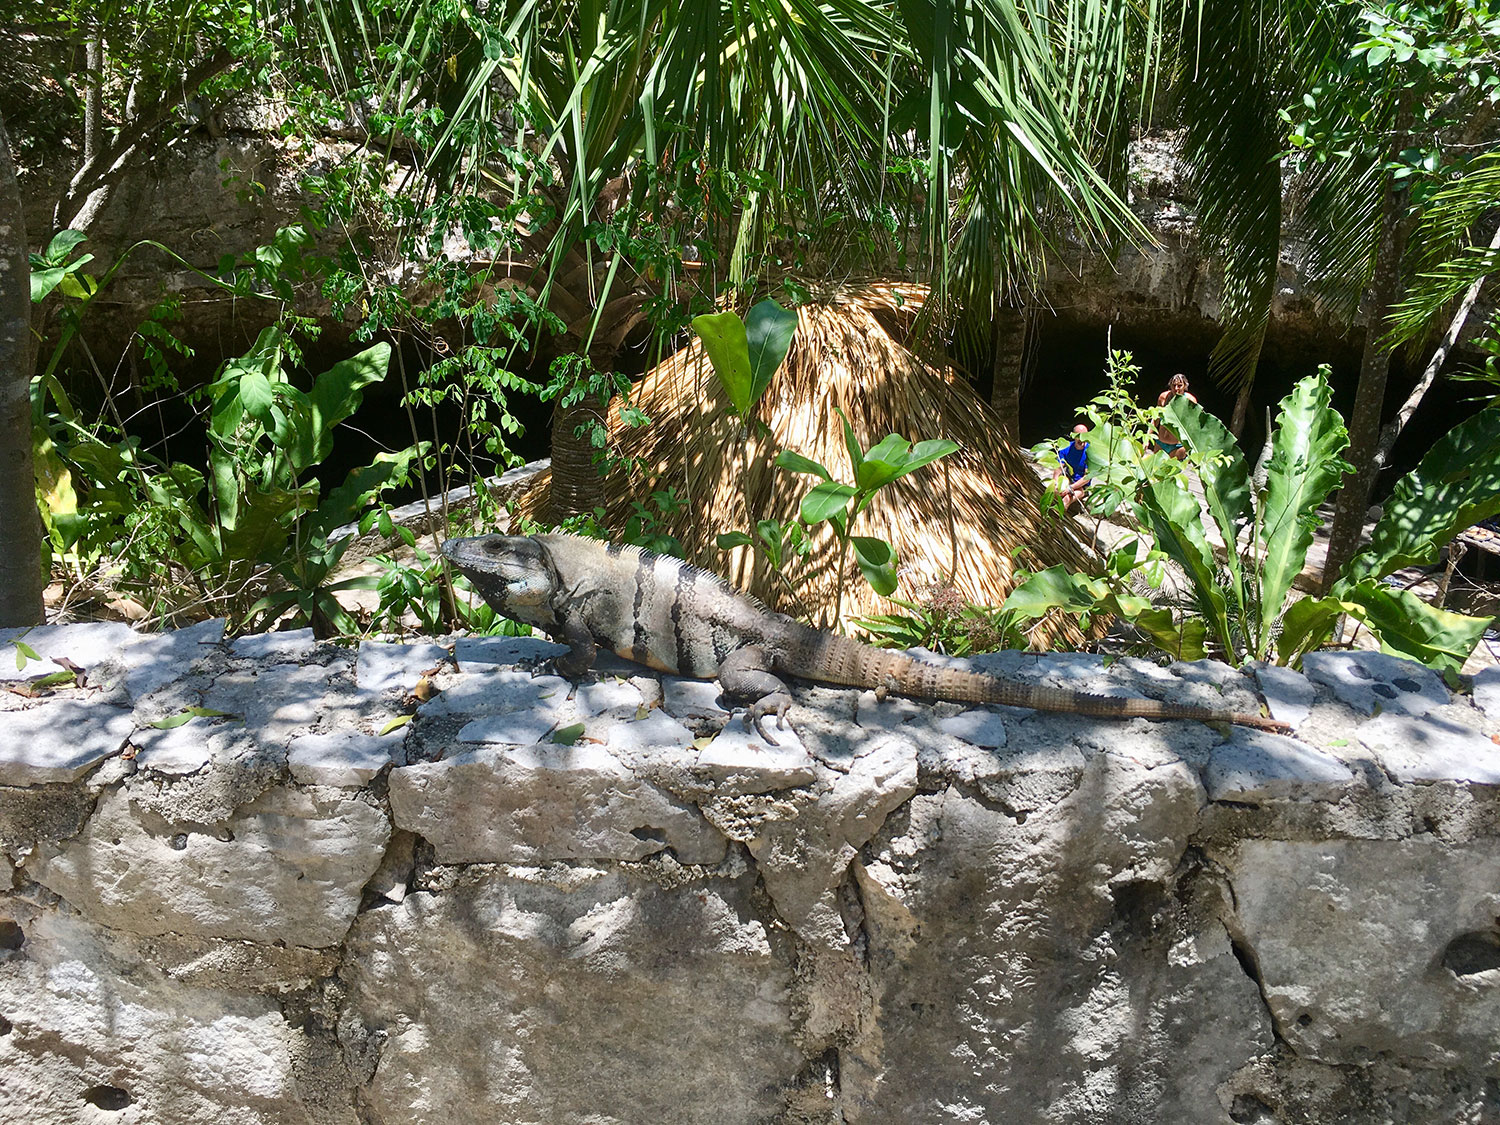 Iguanas abound in the jungle villages and cenotes.